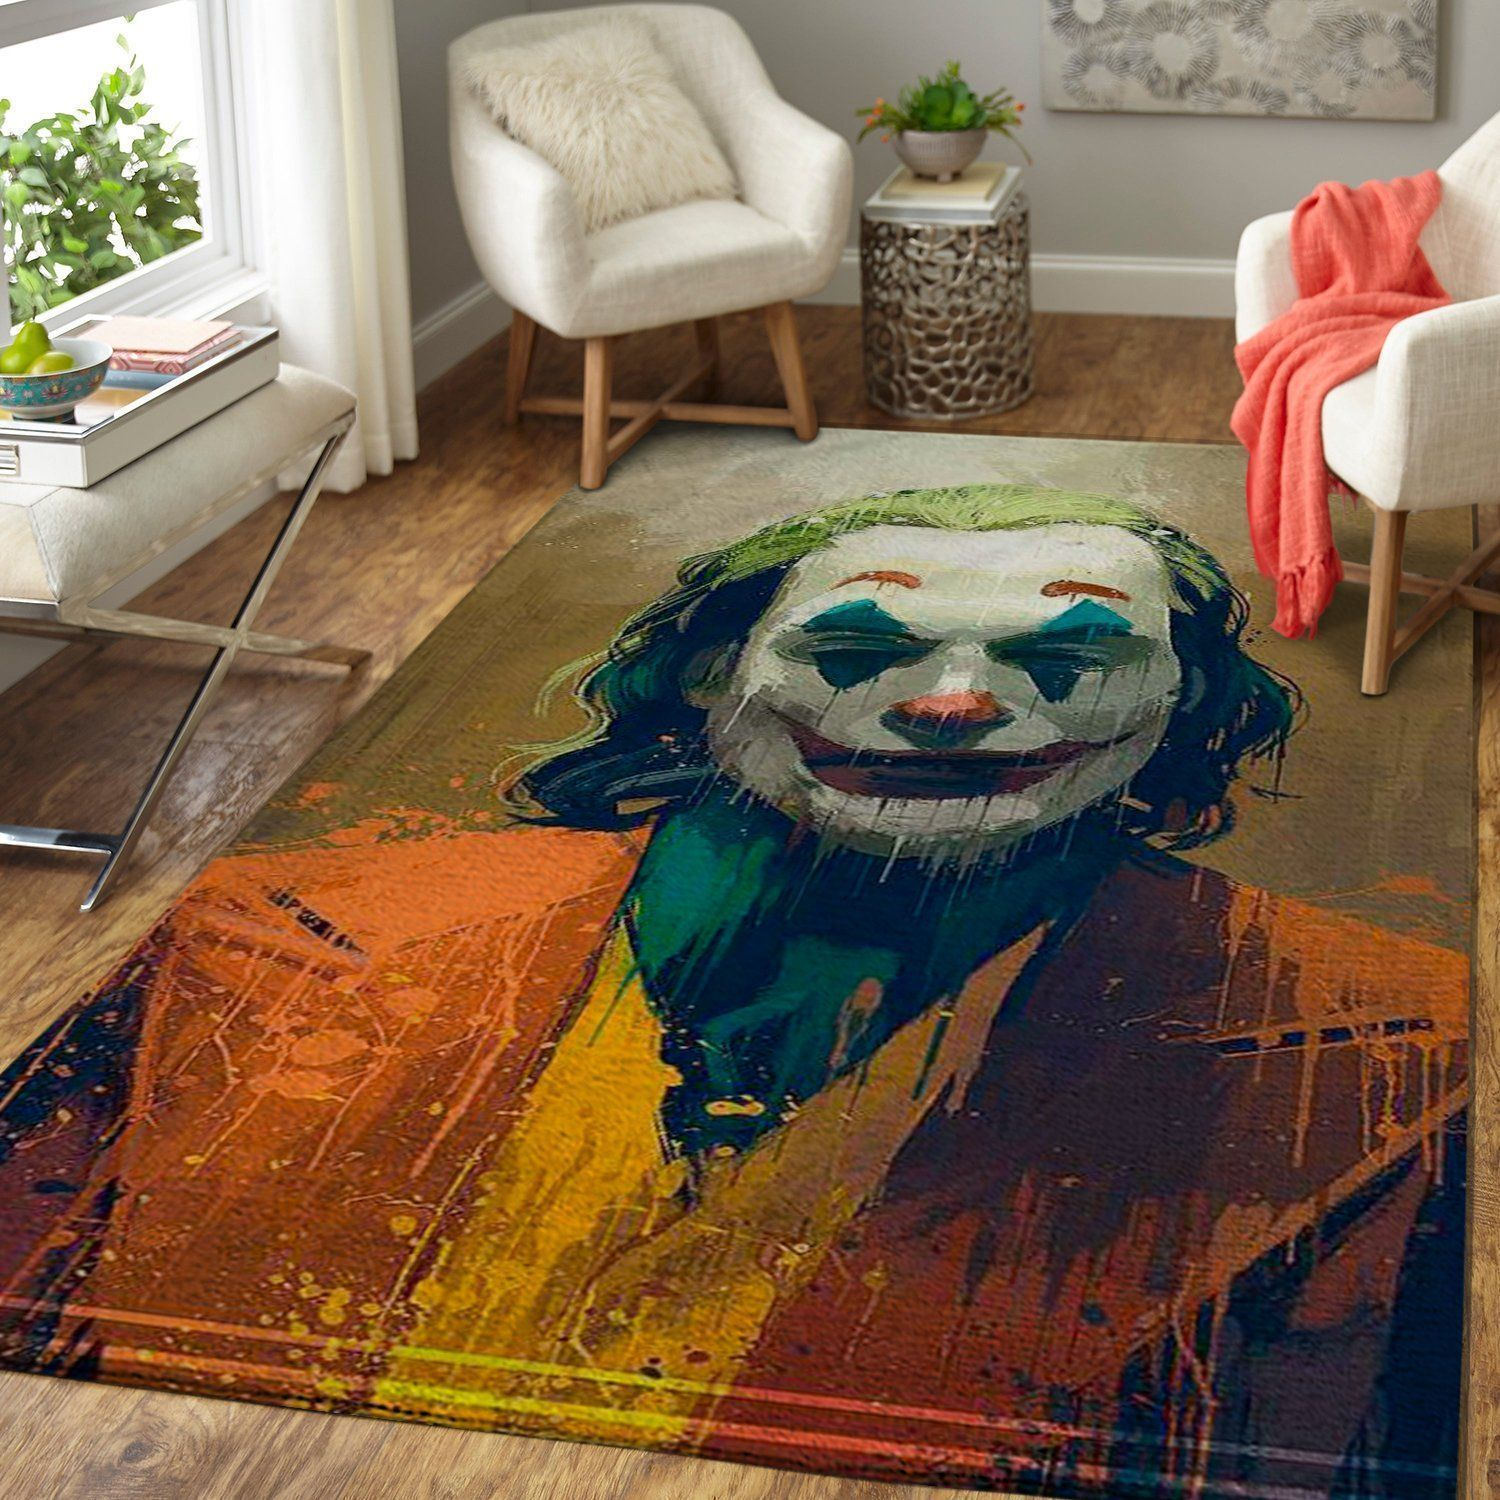 Joker Area Rugs, Movie Living Room Carpet, Custom Floor Decor